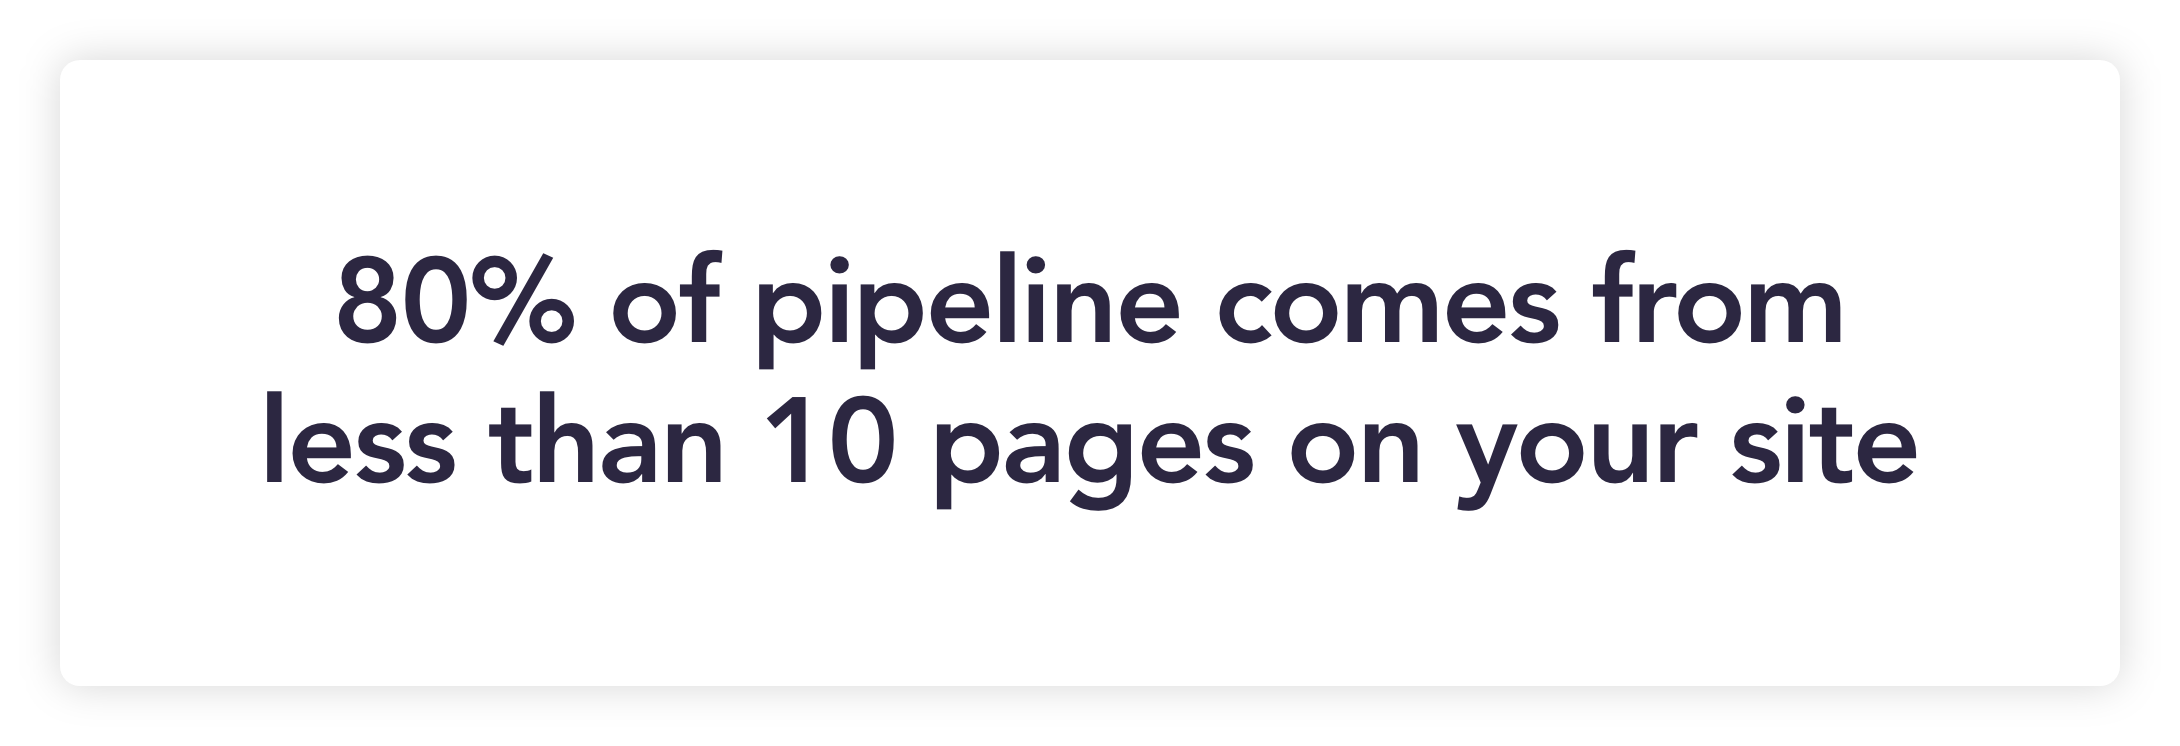 B2B company pipeline 80% of pipeline comes from less than 10 pages on your site